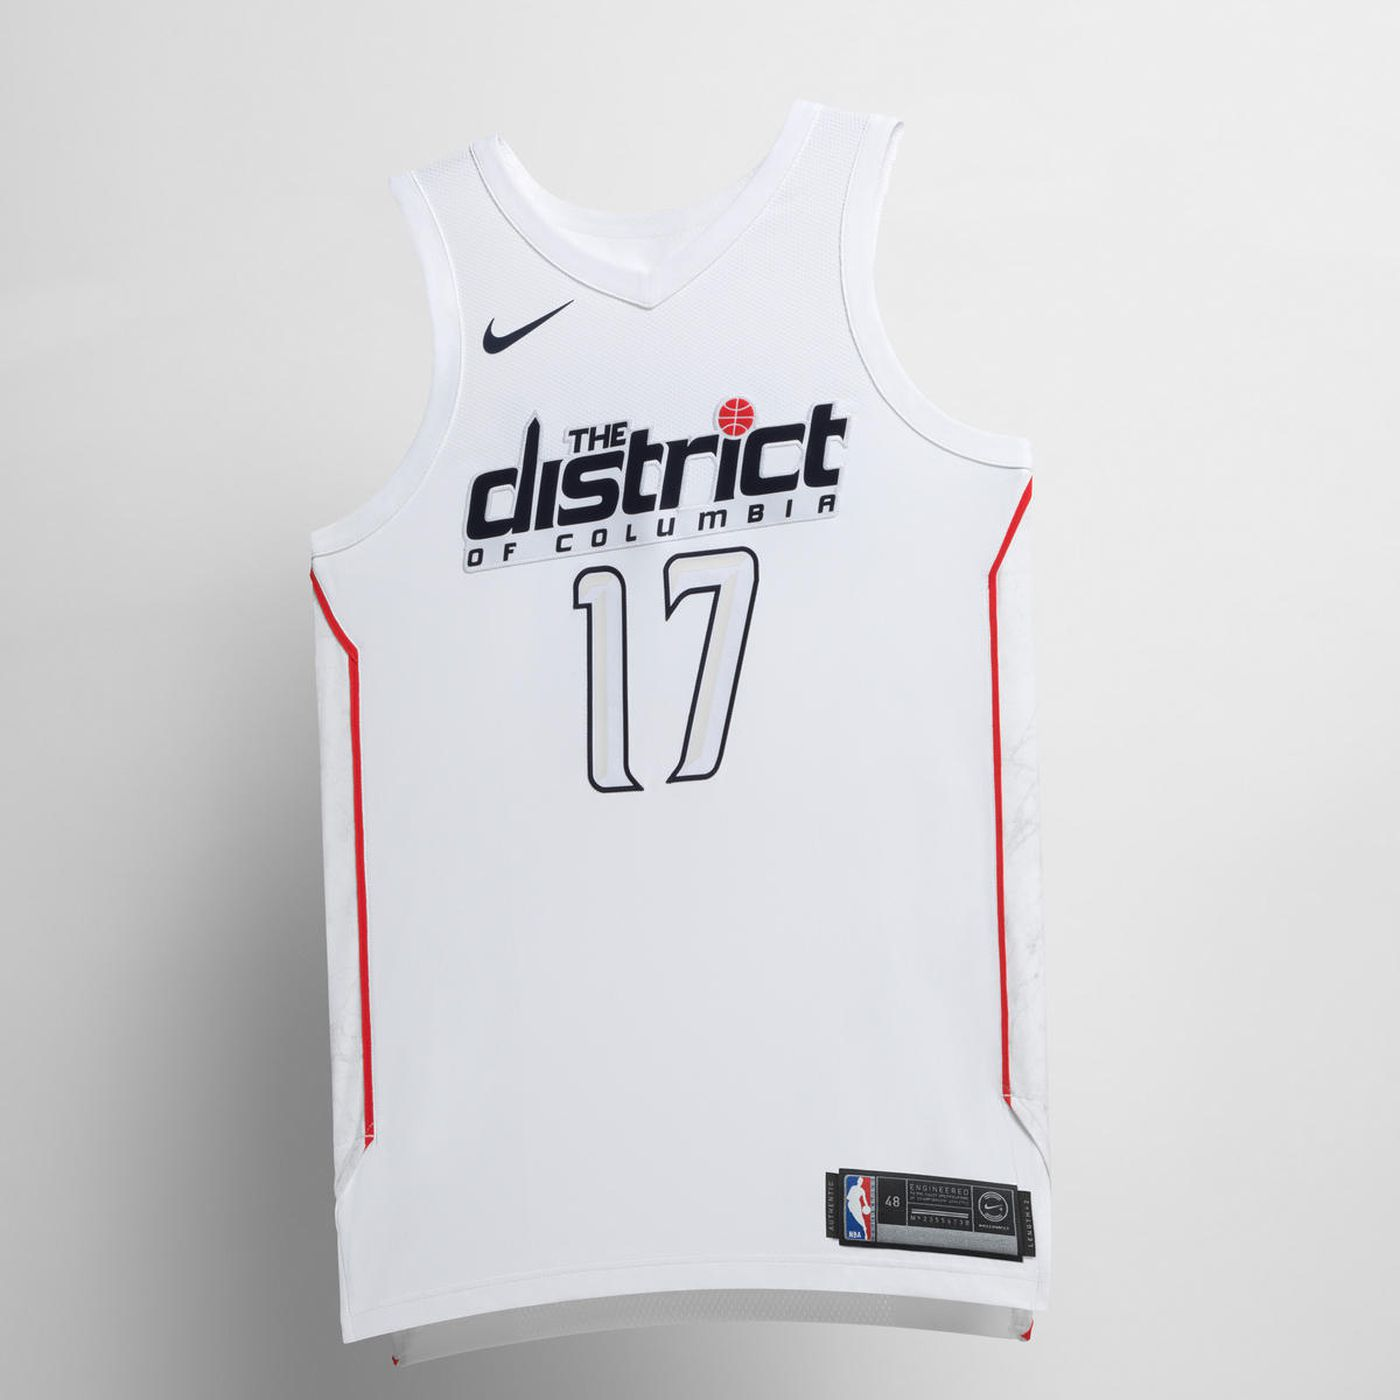 official photos 88da0 2f1b4 Here is the Wizards 'The District' City Edition uniform ...